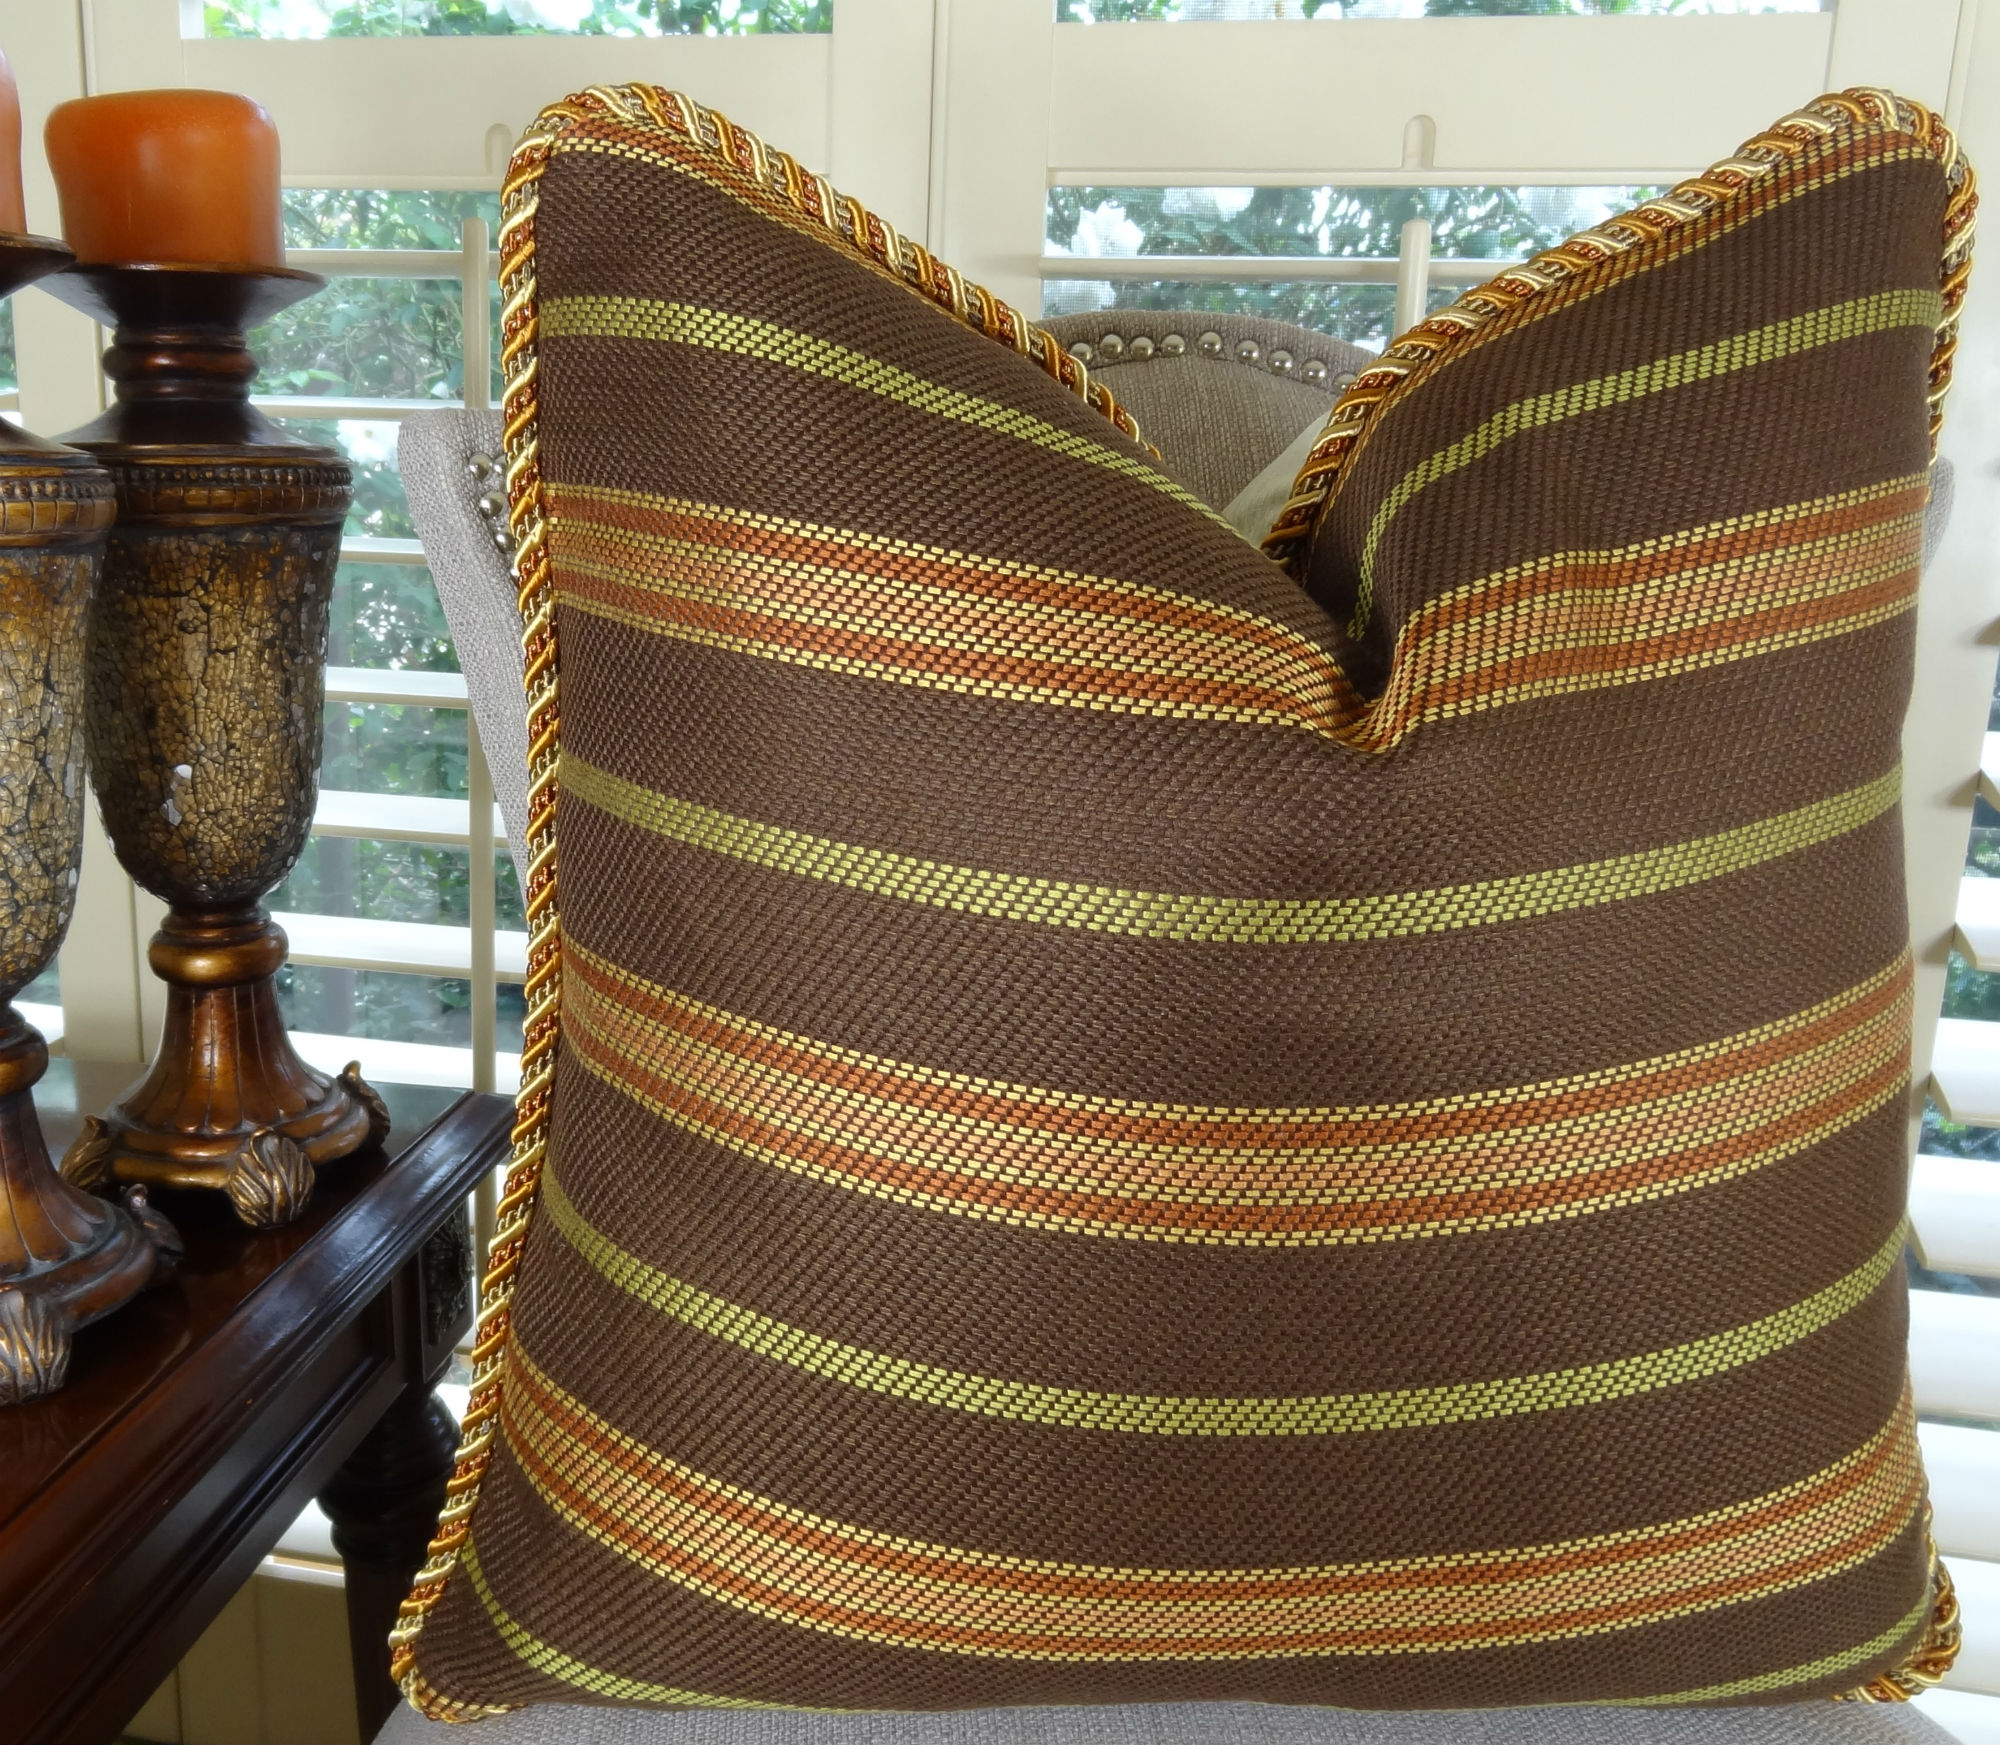 20 X 20 Luxury Decorative Throw Pillow Designer Brown Copper Green Stripe Pillow Modern Stripe Pillow Truffle Brown Couch Pillow 11338 Sold